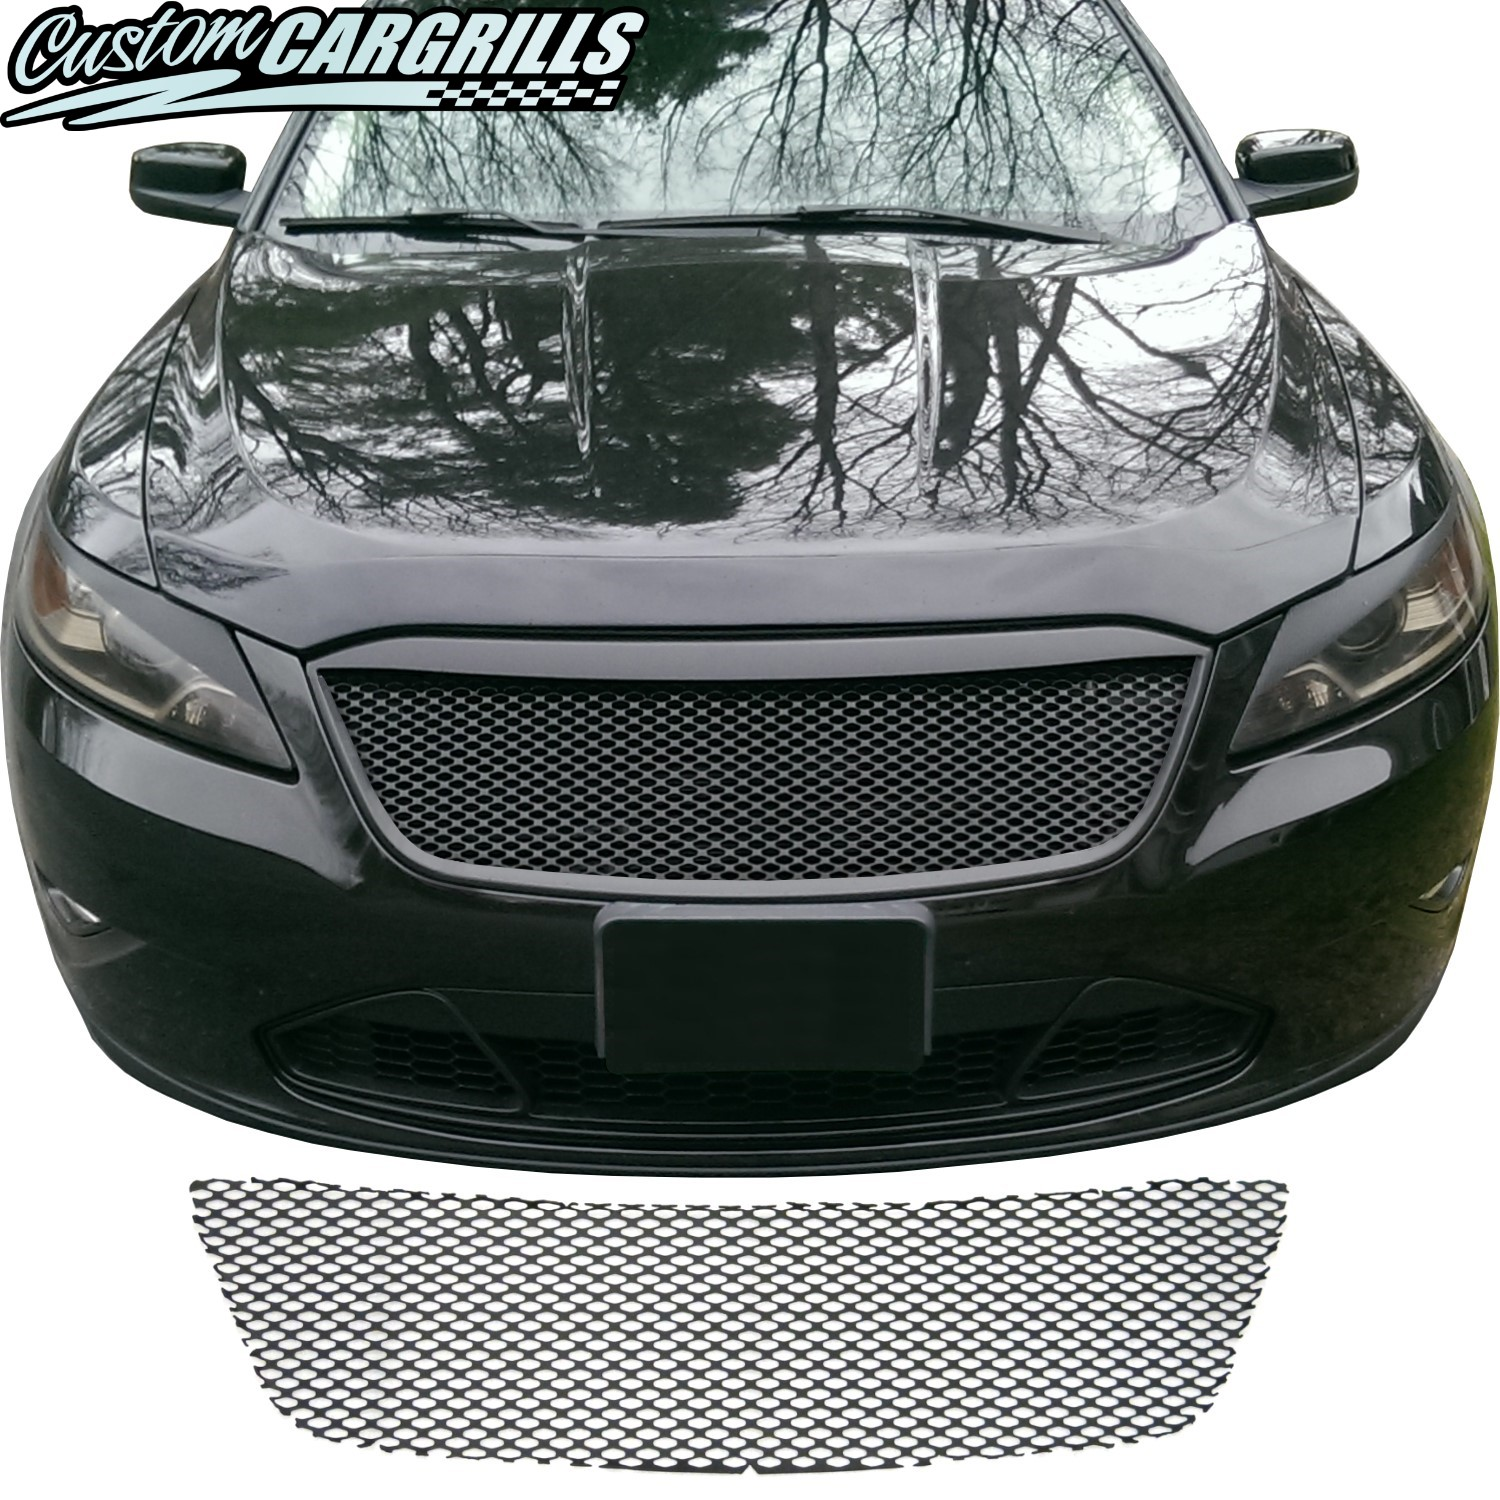 2010 - 2012 Ford Taurus Mesh Grill Piece